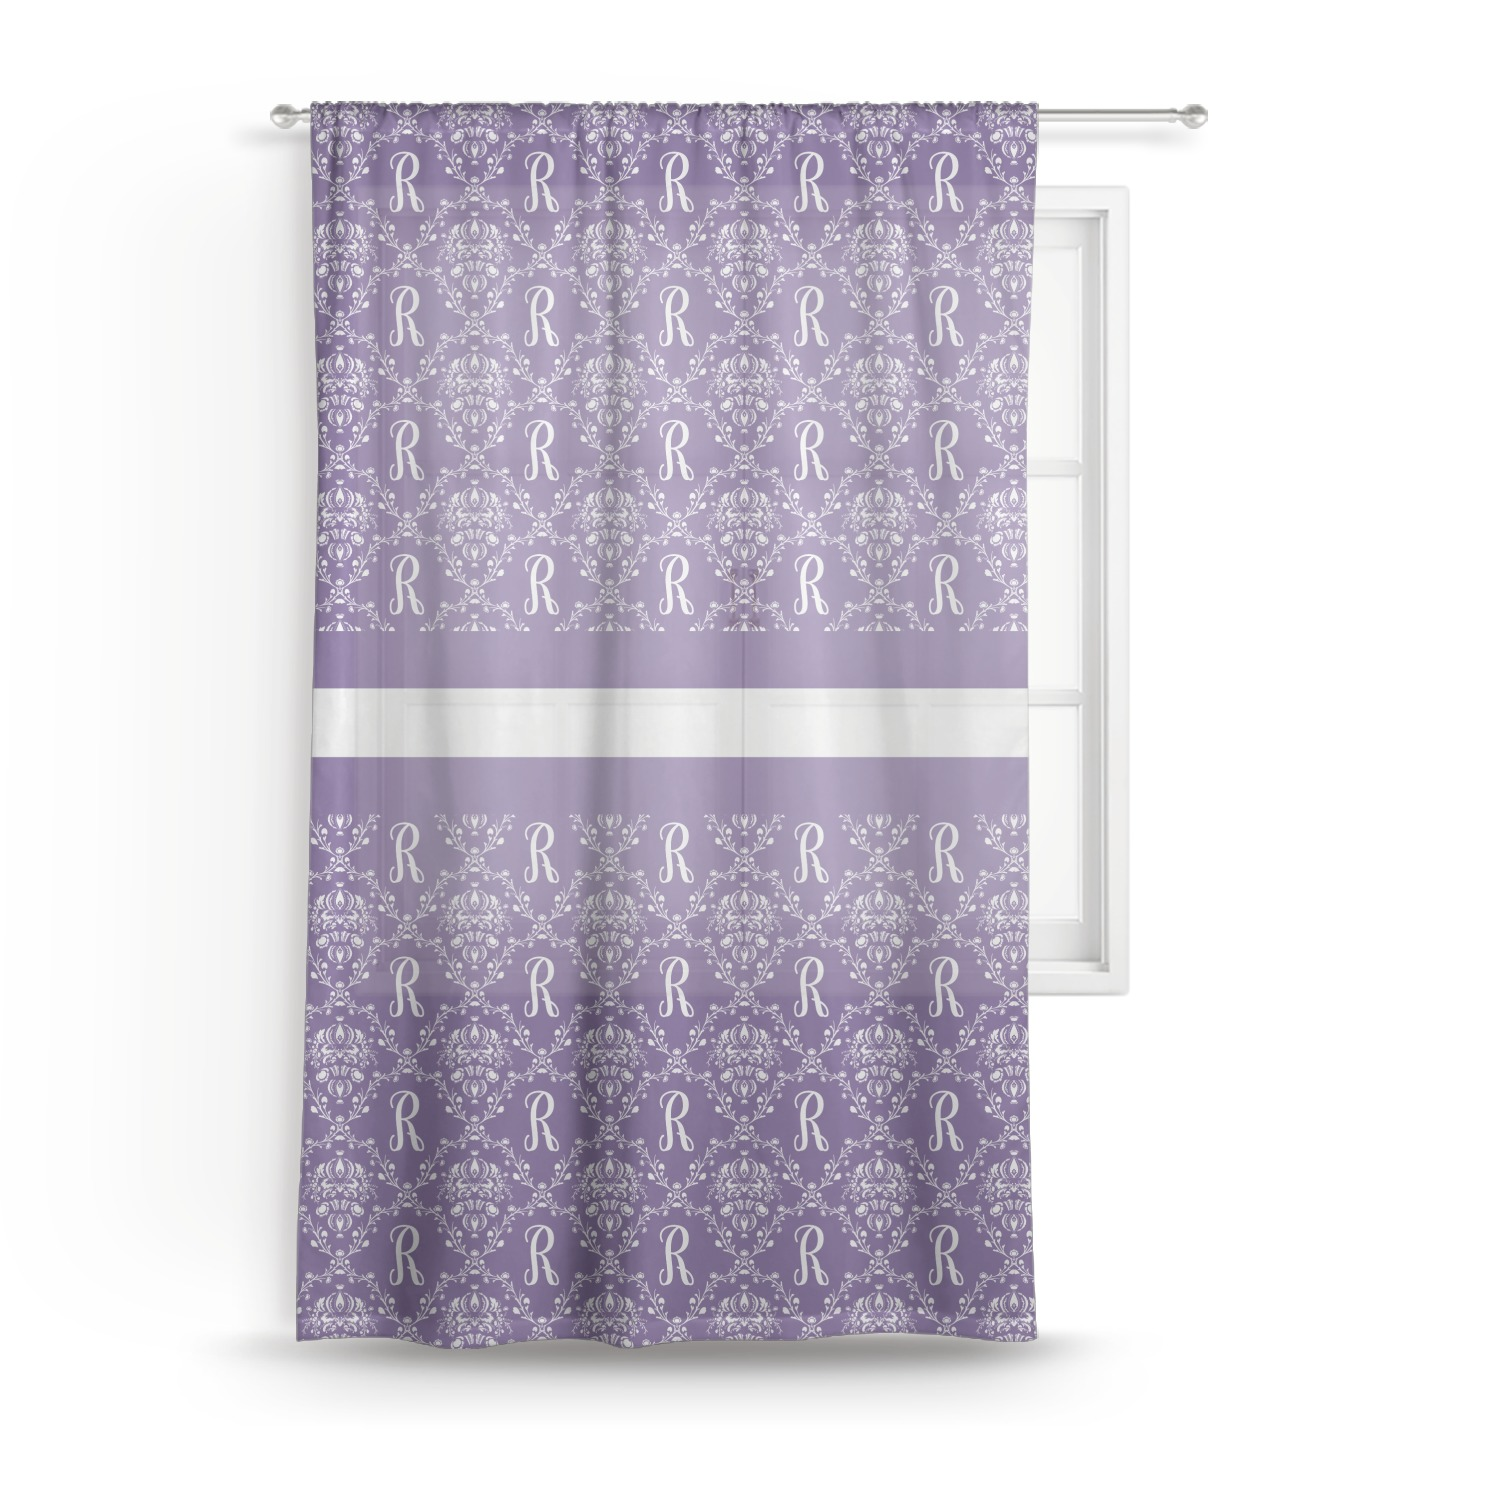 Lavender Sheer Curtains Initial Damask Sheer Curtains Personalized